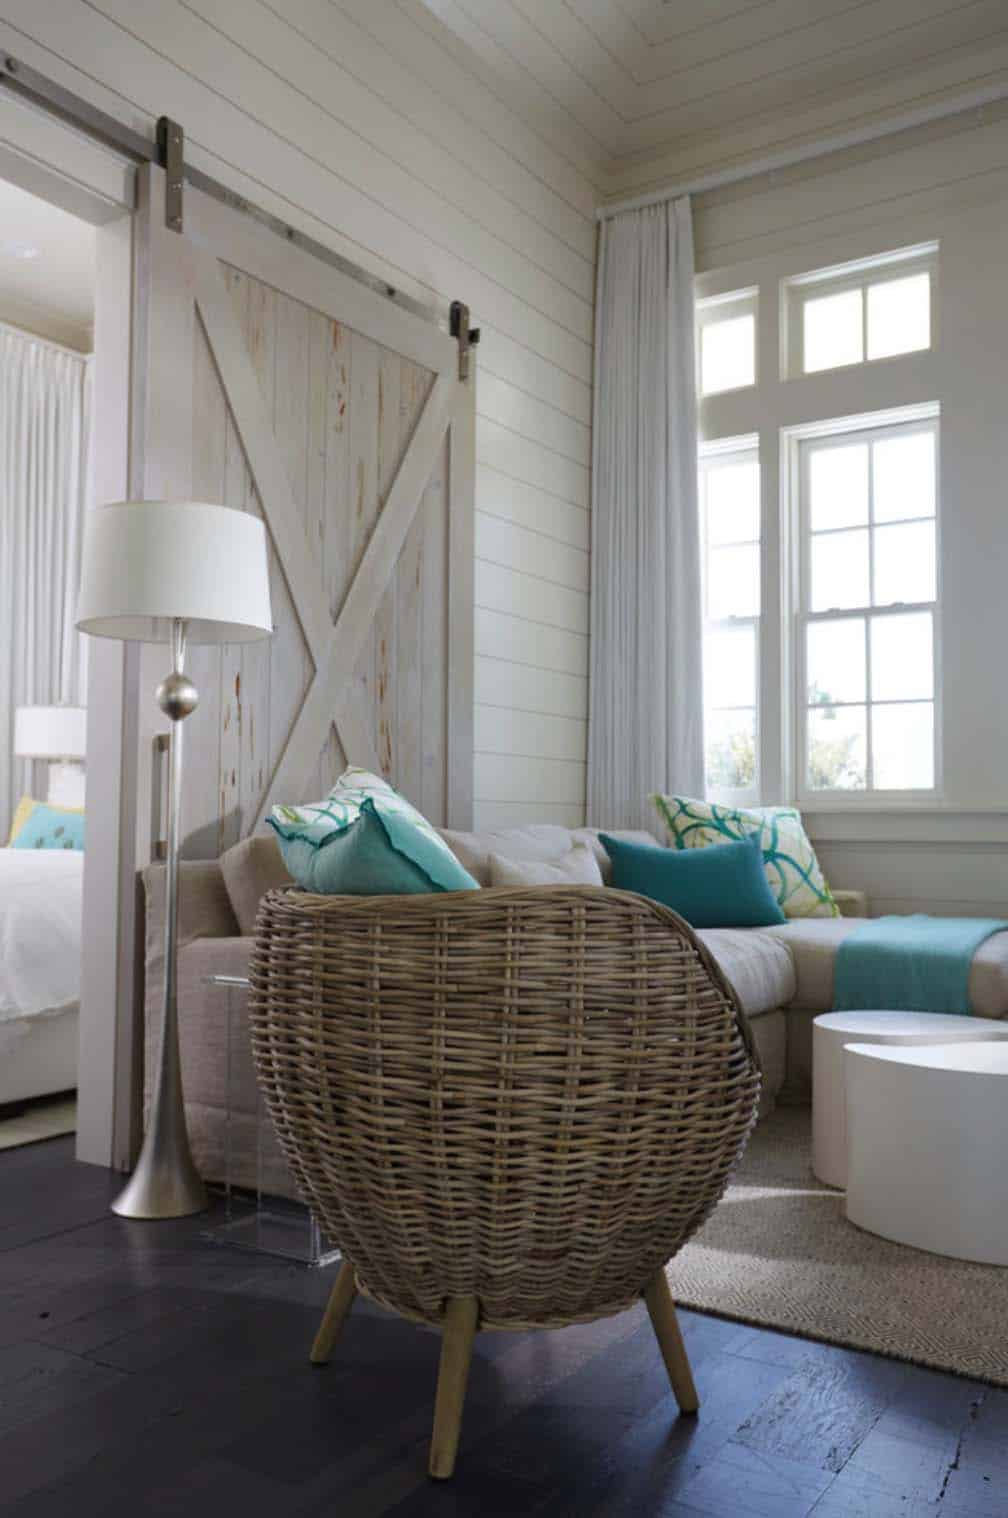 Florida Beach House-Geoff Chick-35-1 Kindesign